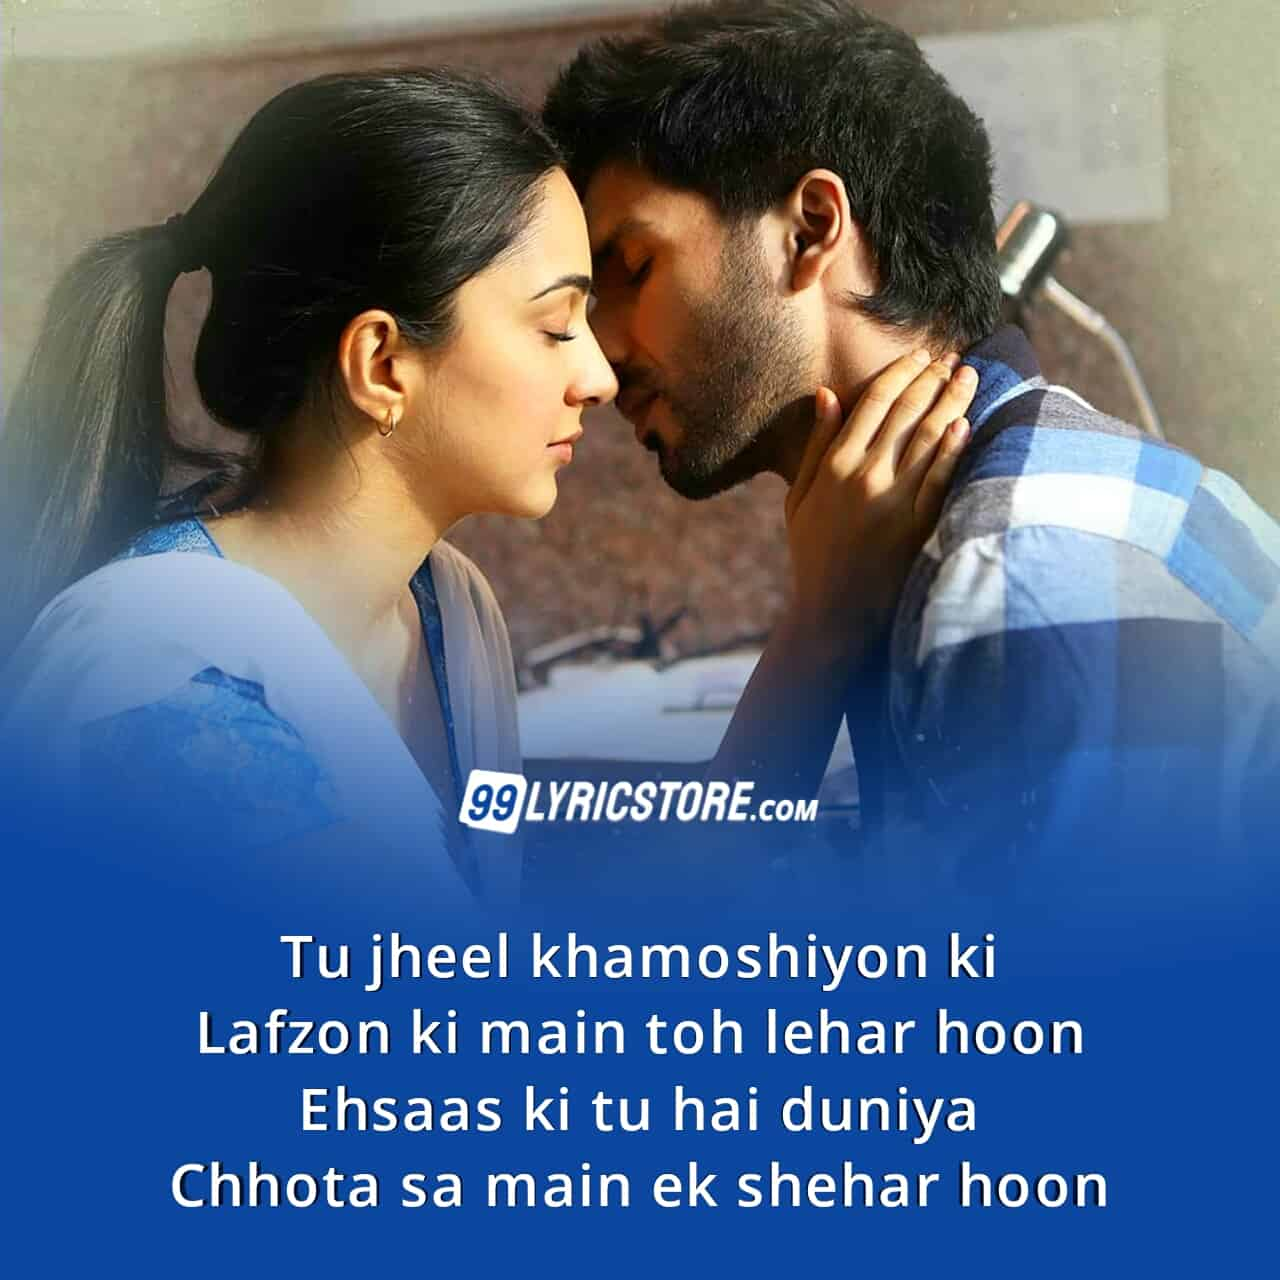 Yeh Aaina Hindi Song Lyrics Sung by Shreya Ghoshal from movie Kabir Singh